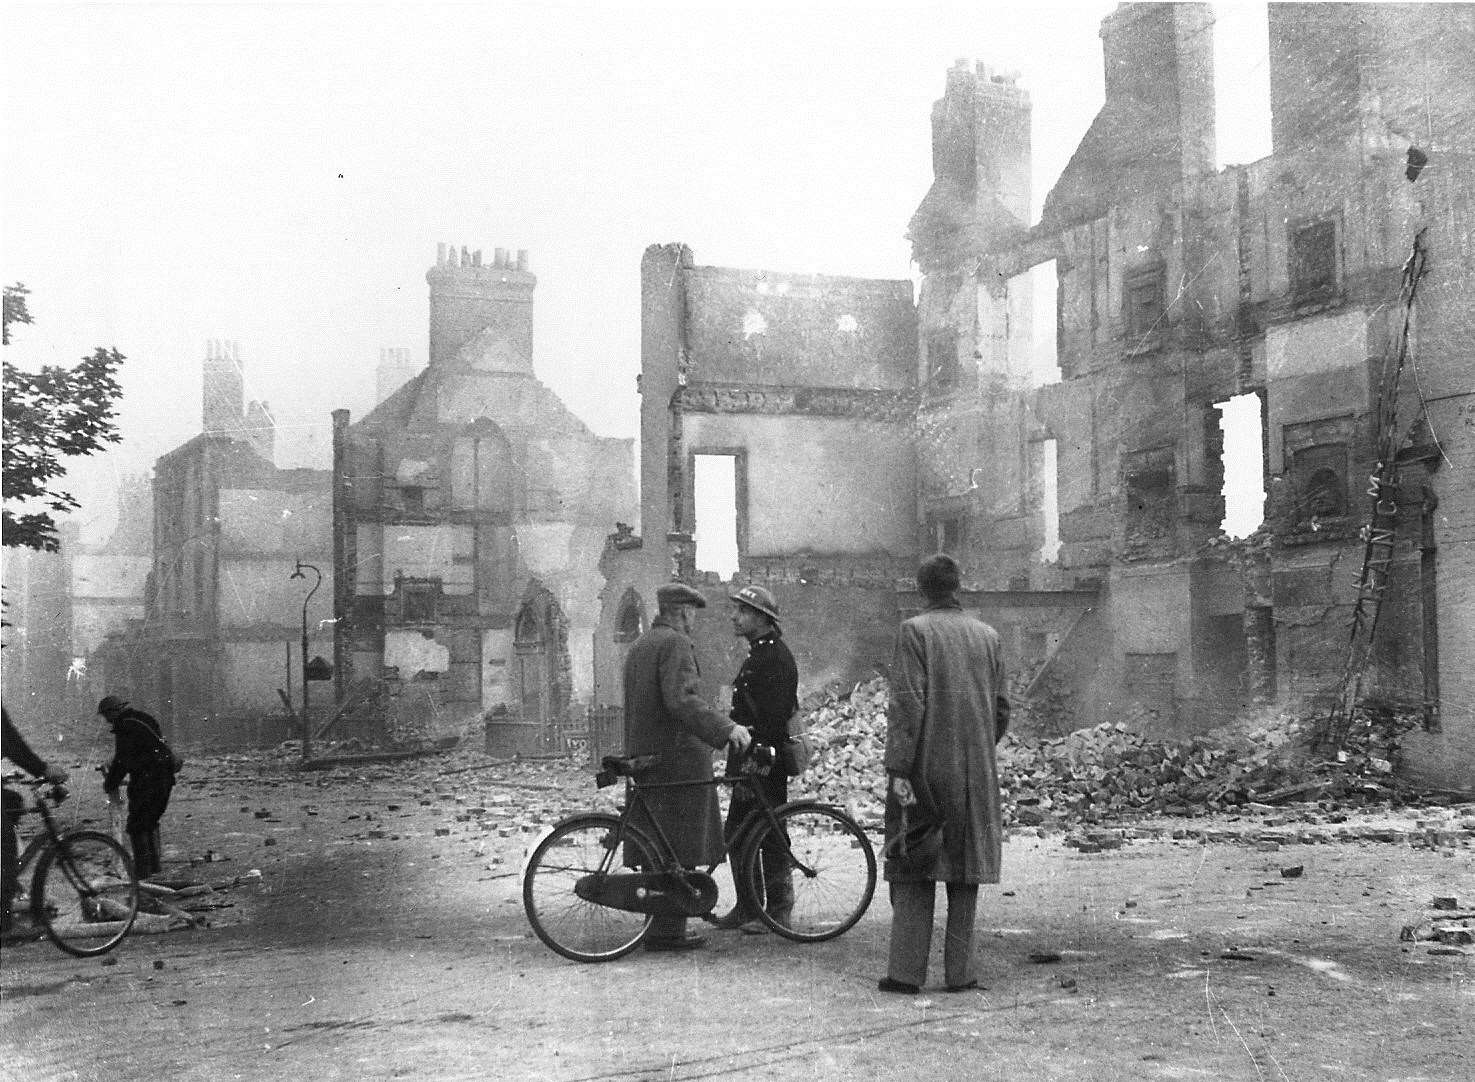 The north side of St. George's Place, in the immediate aftermath of the June 1942 blitz